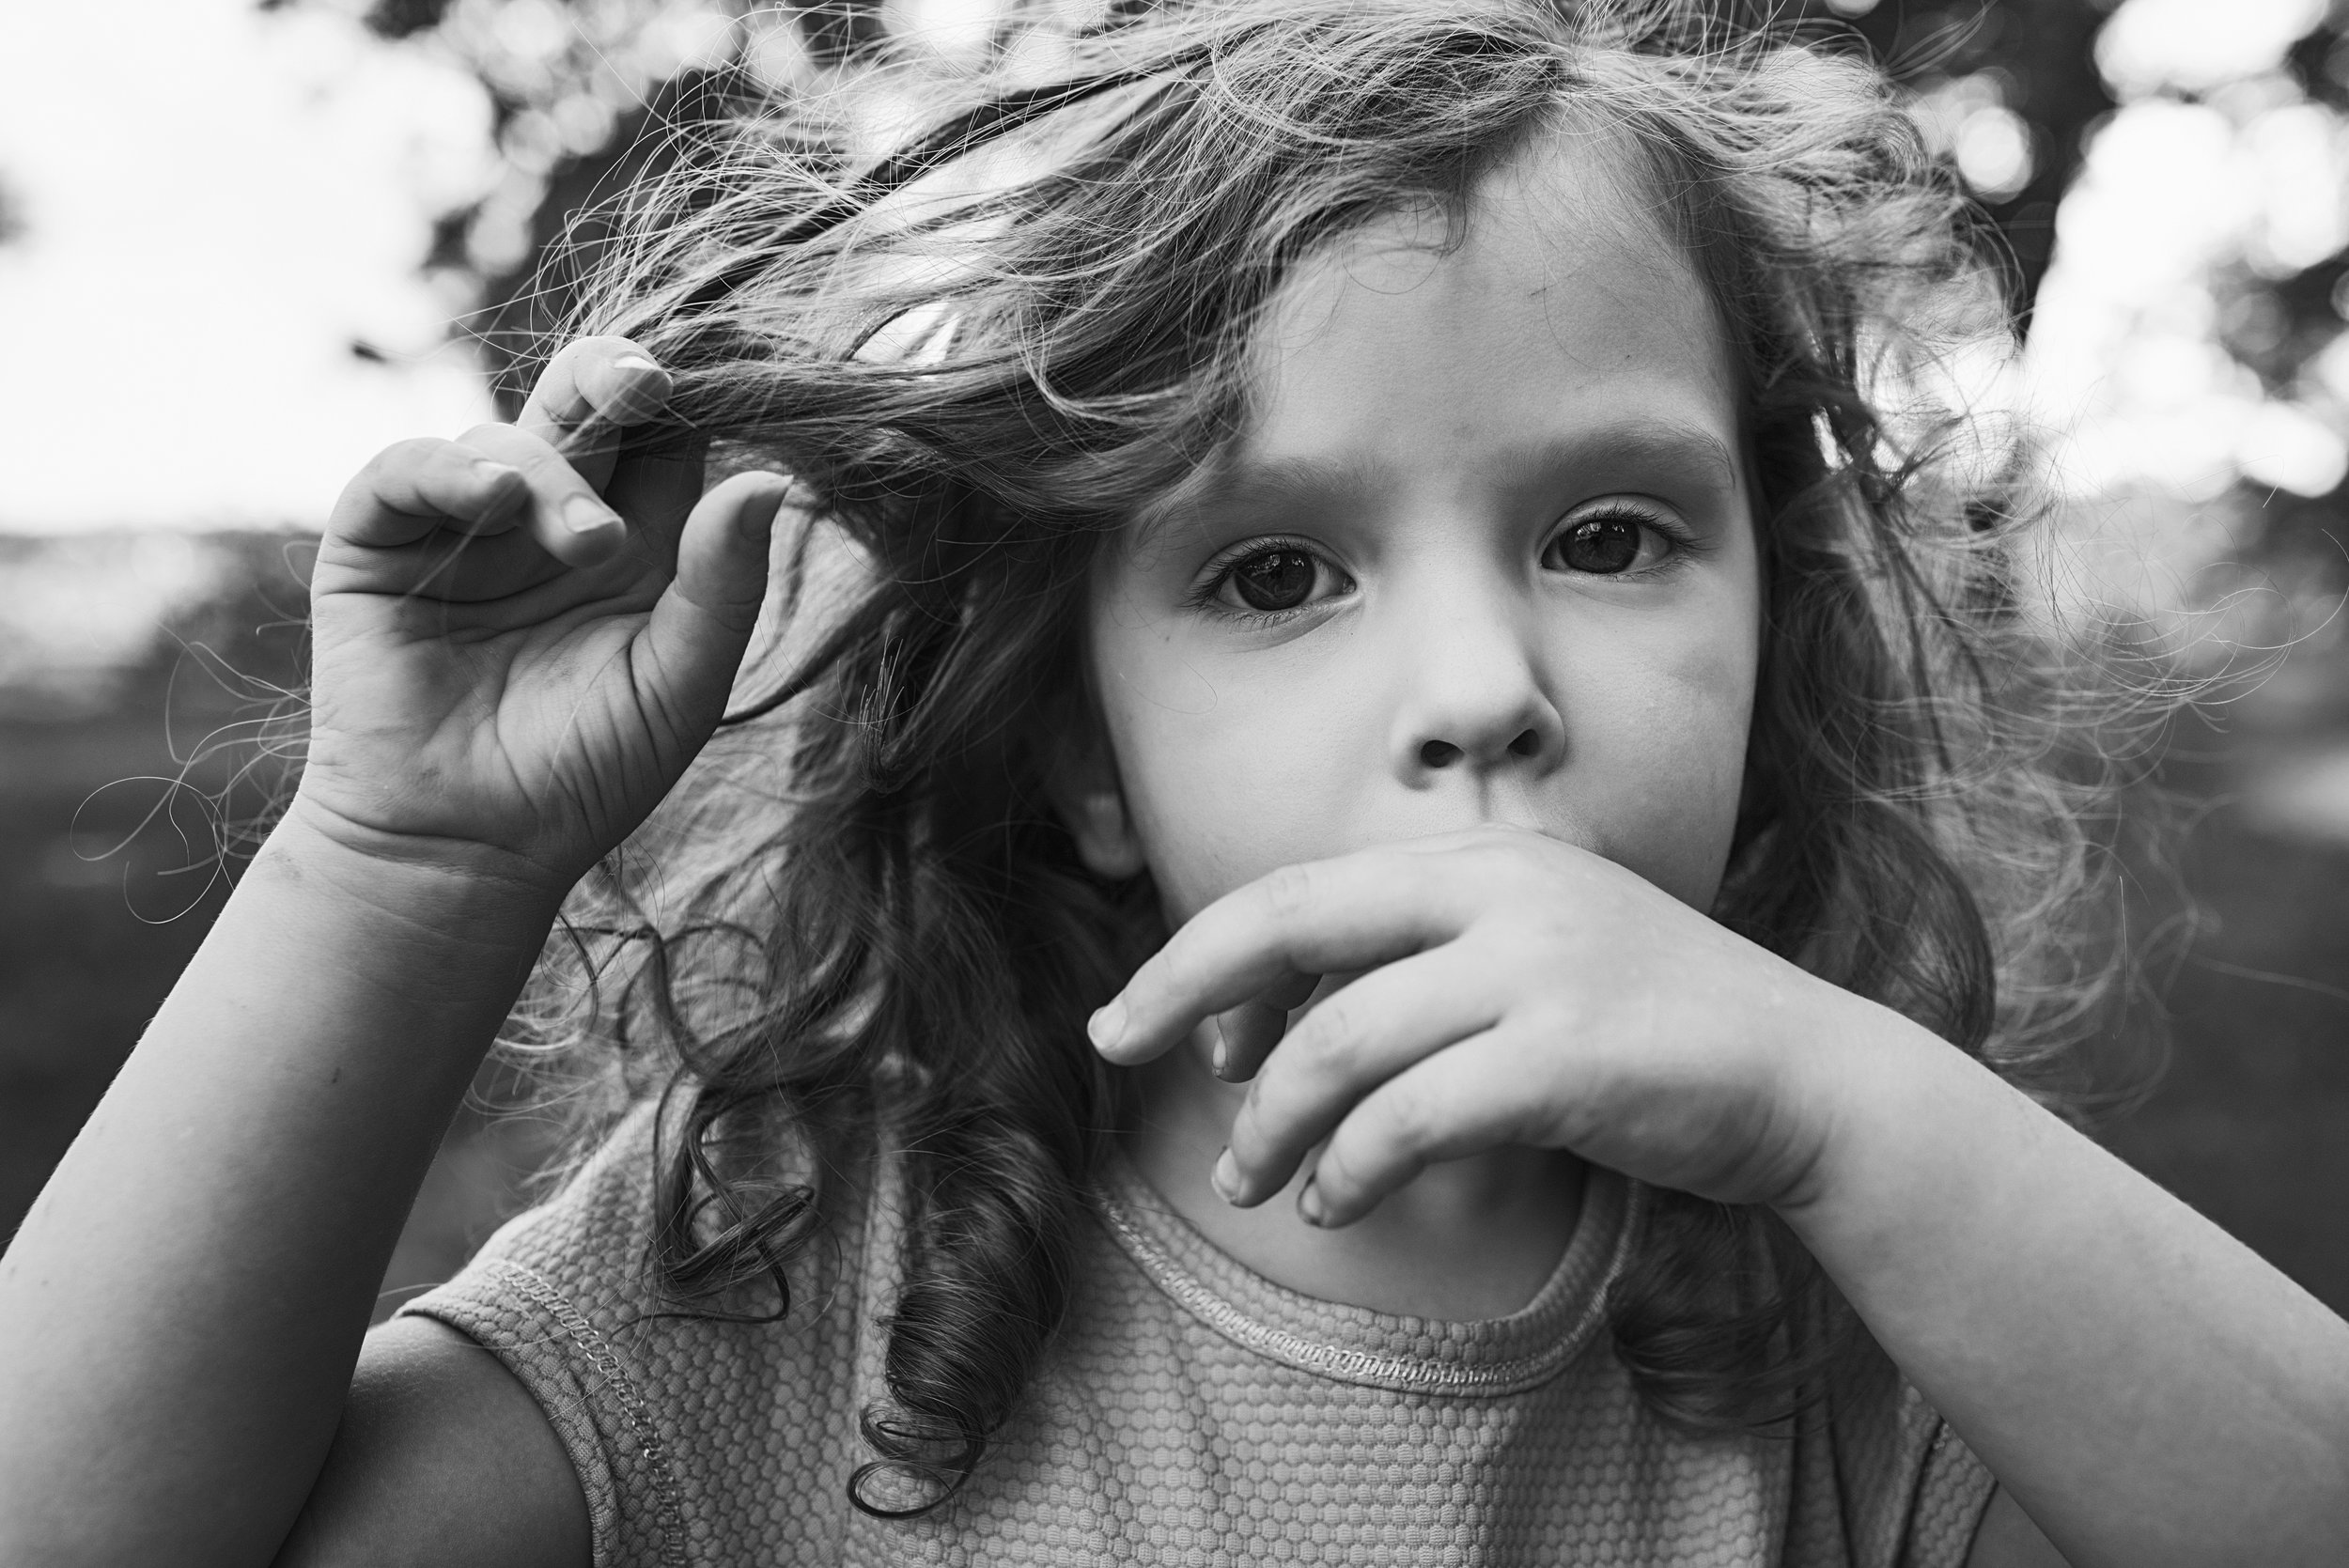 As a parent and photographer, Nicoleinbold looks to capture the moments we hope to hold onto forever like the way this girl twirls her hair while she sucks her thumb.